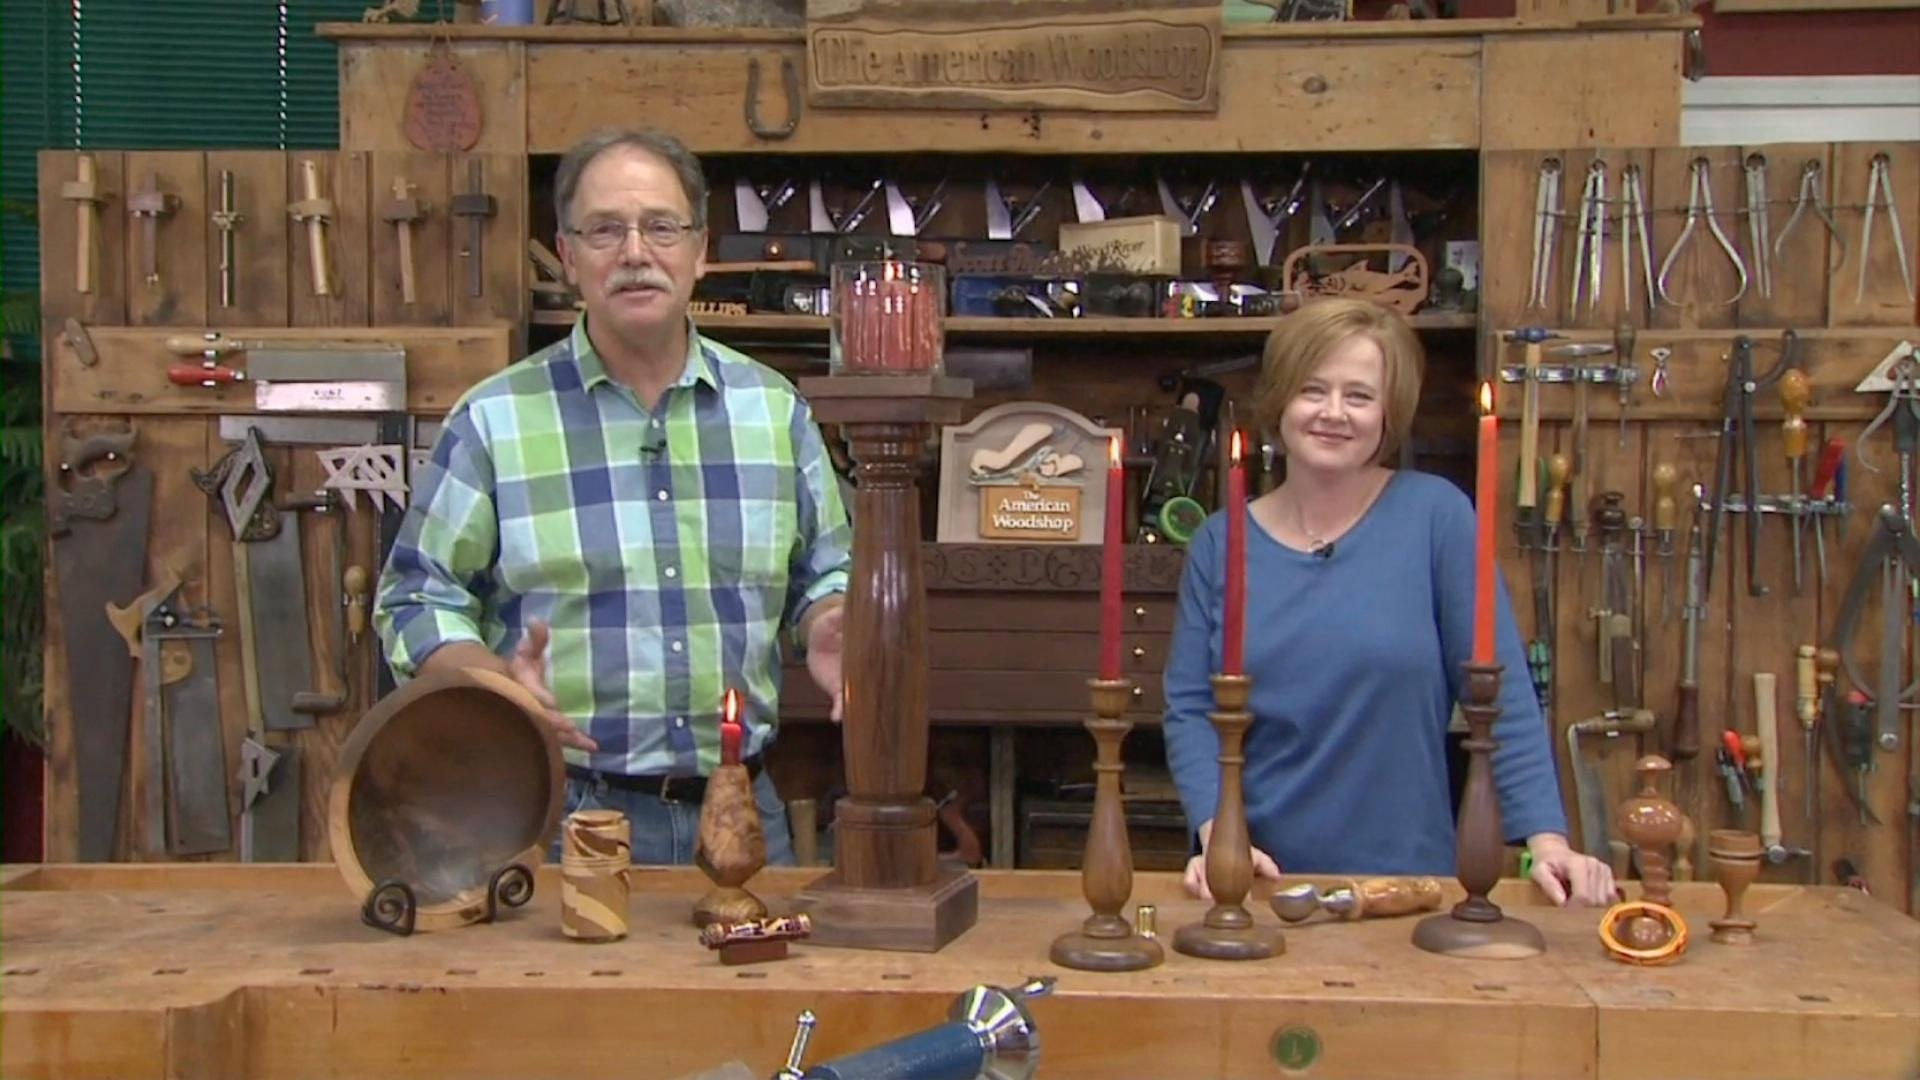 ... of american woodshop on pbs headboards and bedsteads image pbs org